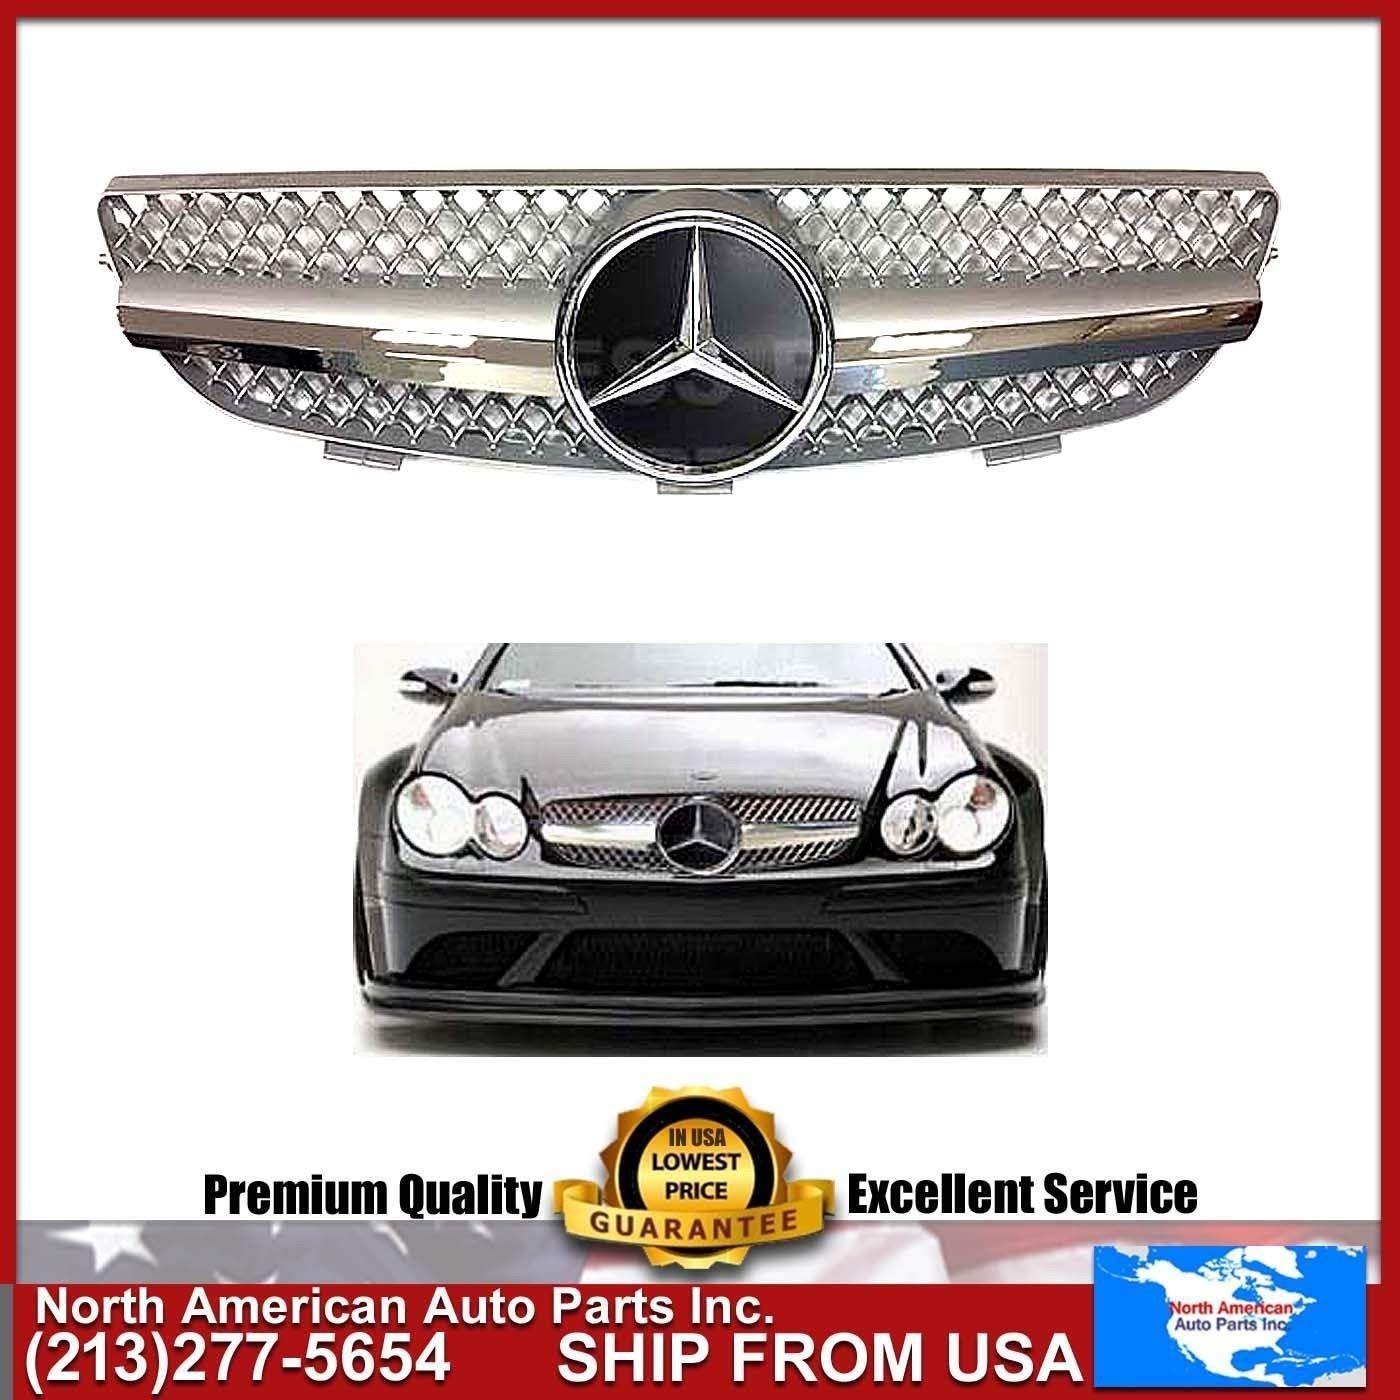 Cheap Benz Clk500 Find Deals On Line At Alibabacom 1998 Mercedes Ml320 Fuel Filter Get Quotations Clk 2003 2009 W209 Gloss Silver Chrome Grille Amg Style With